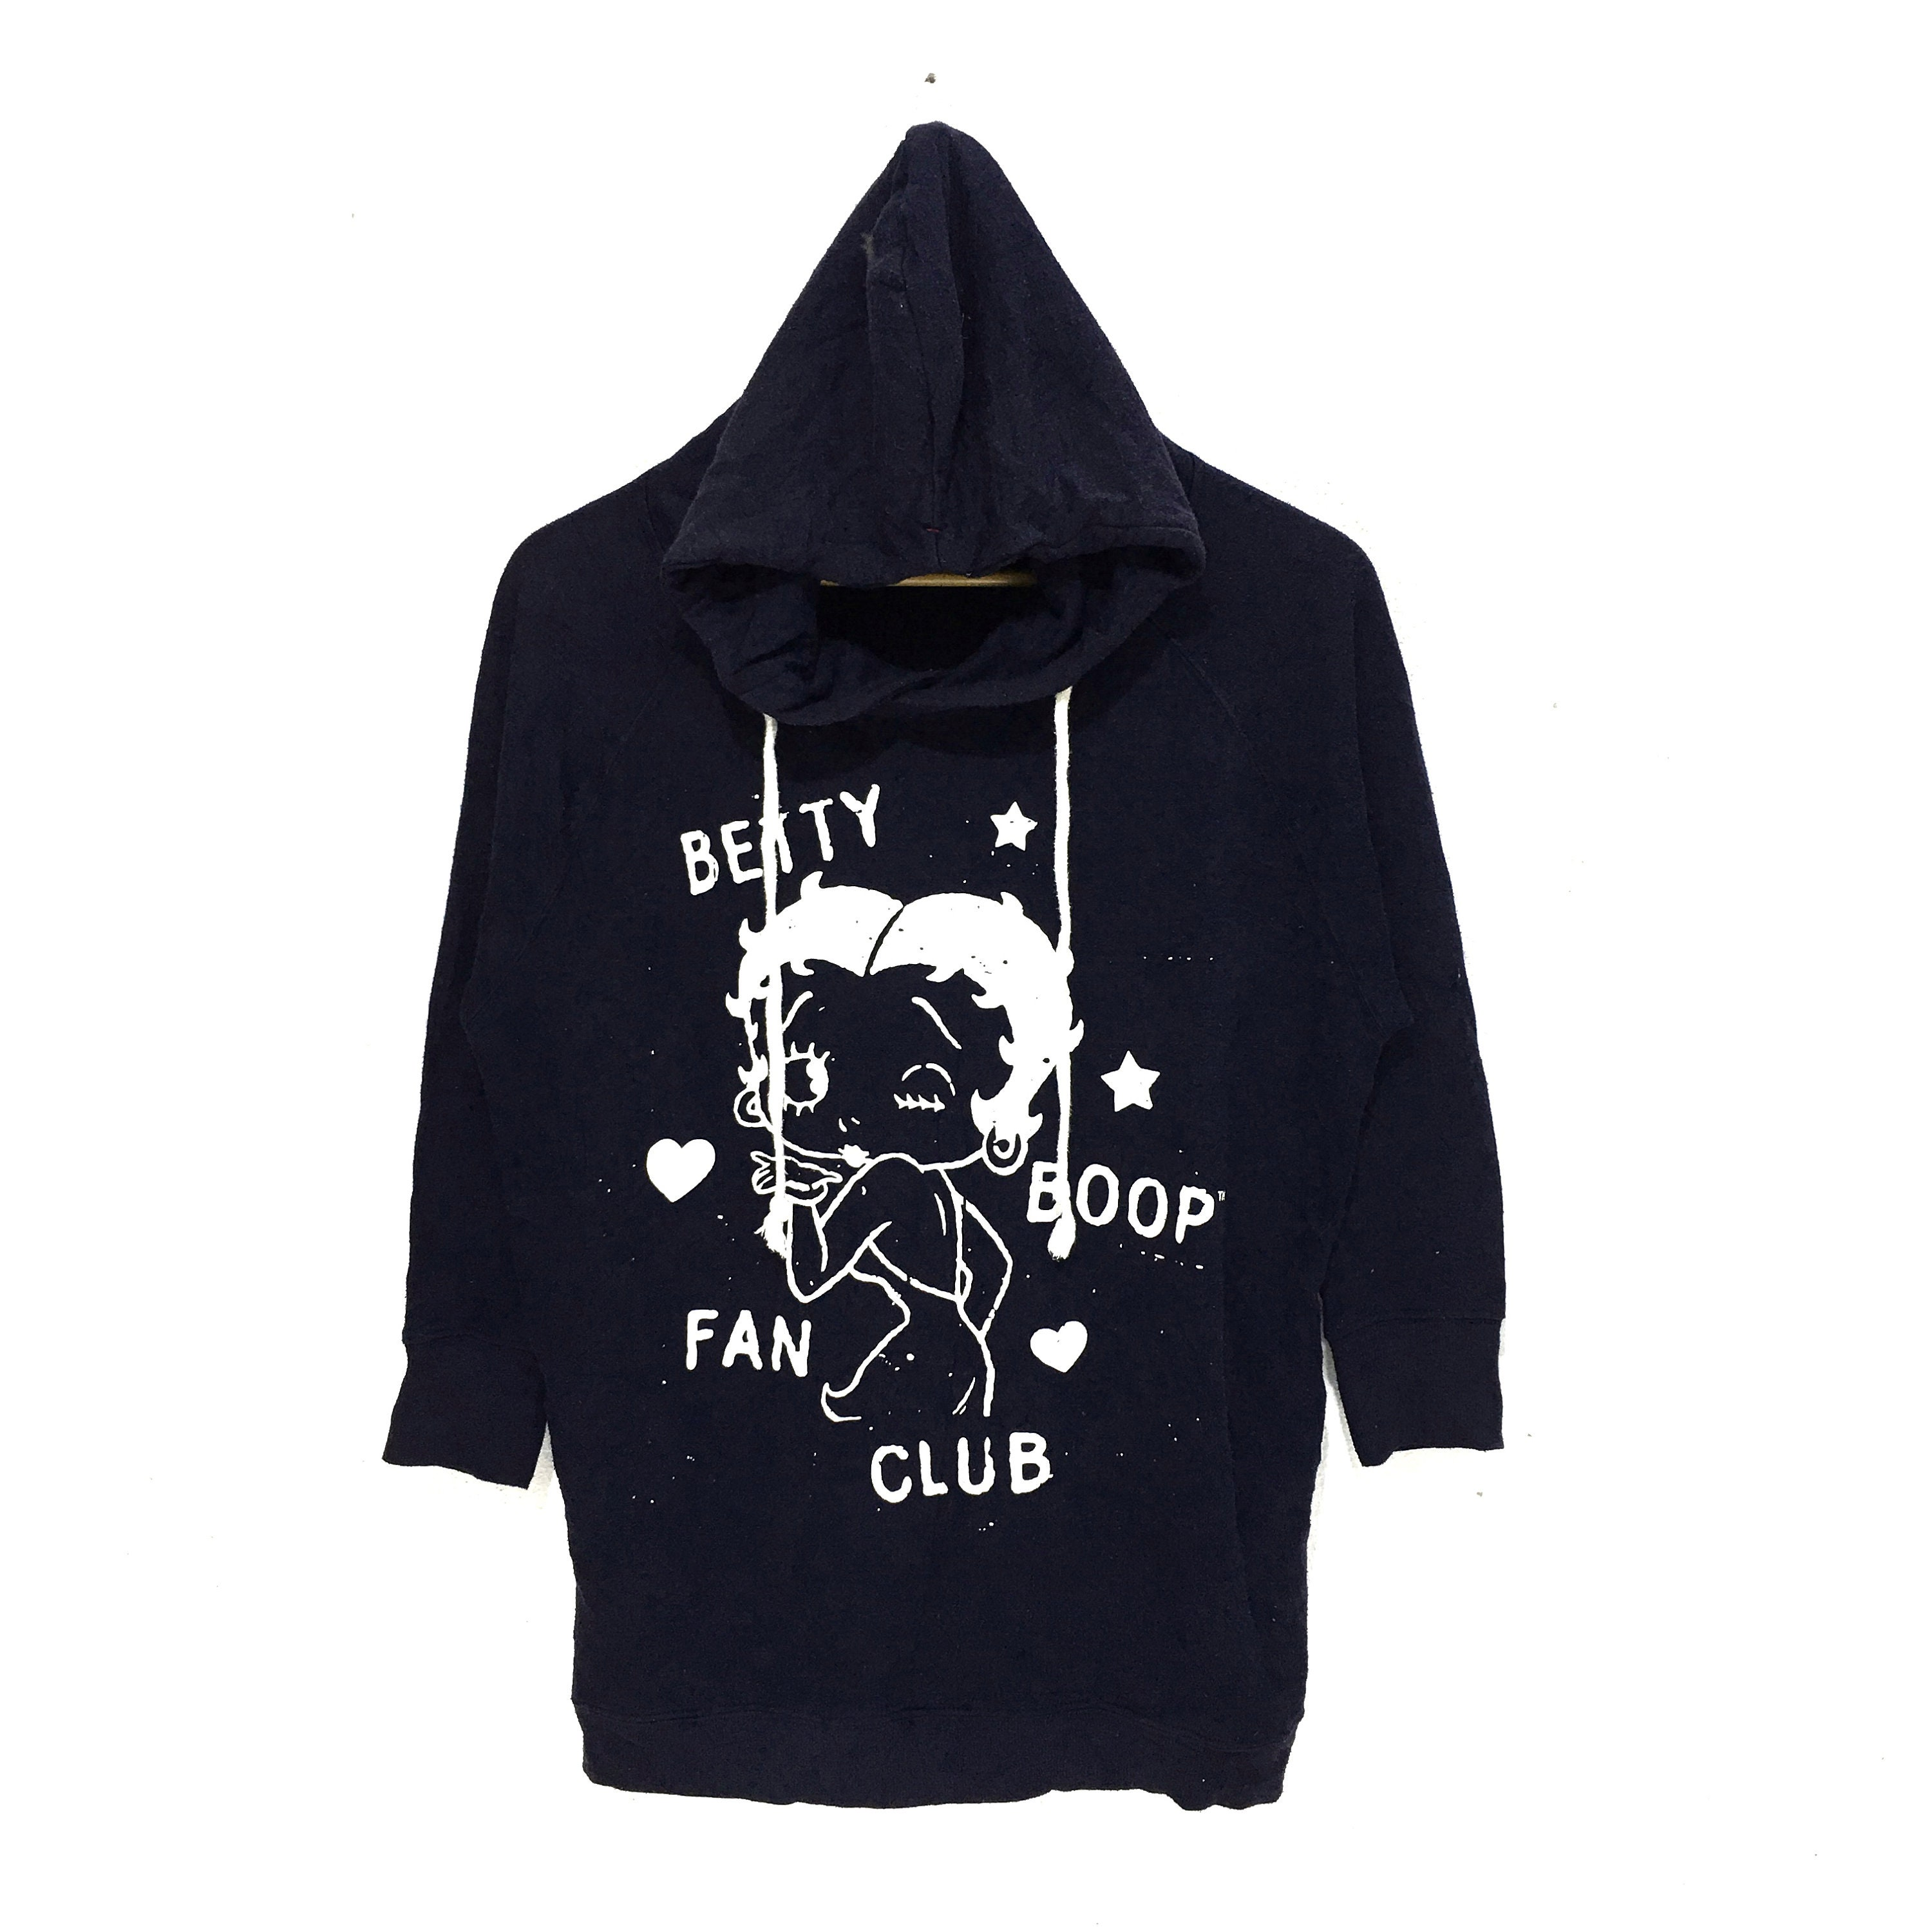 5b8070b2f13d Vintage betty boop hoodie sweatshirt big logo spell out etsy jpg 3000x3000  Hoodie cartoon supreme logos